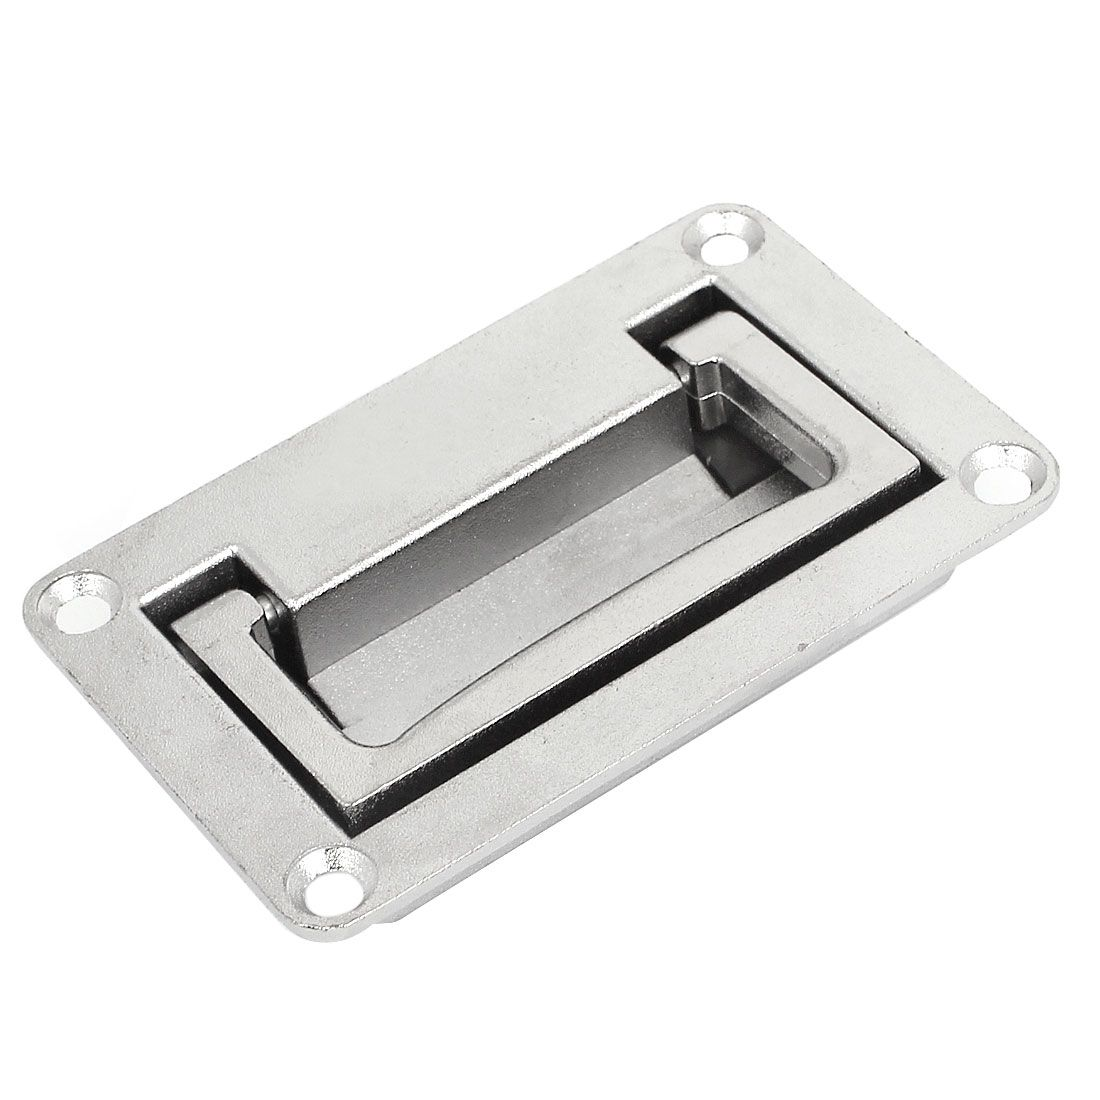 UXCELL Cupboard Cabinet Rectangle Shaped Recessed Folding Pull Handle Grip 9.5 x 6x 1.7cm Silver Tone for Home Furniture, Window